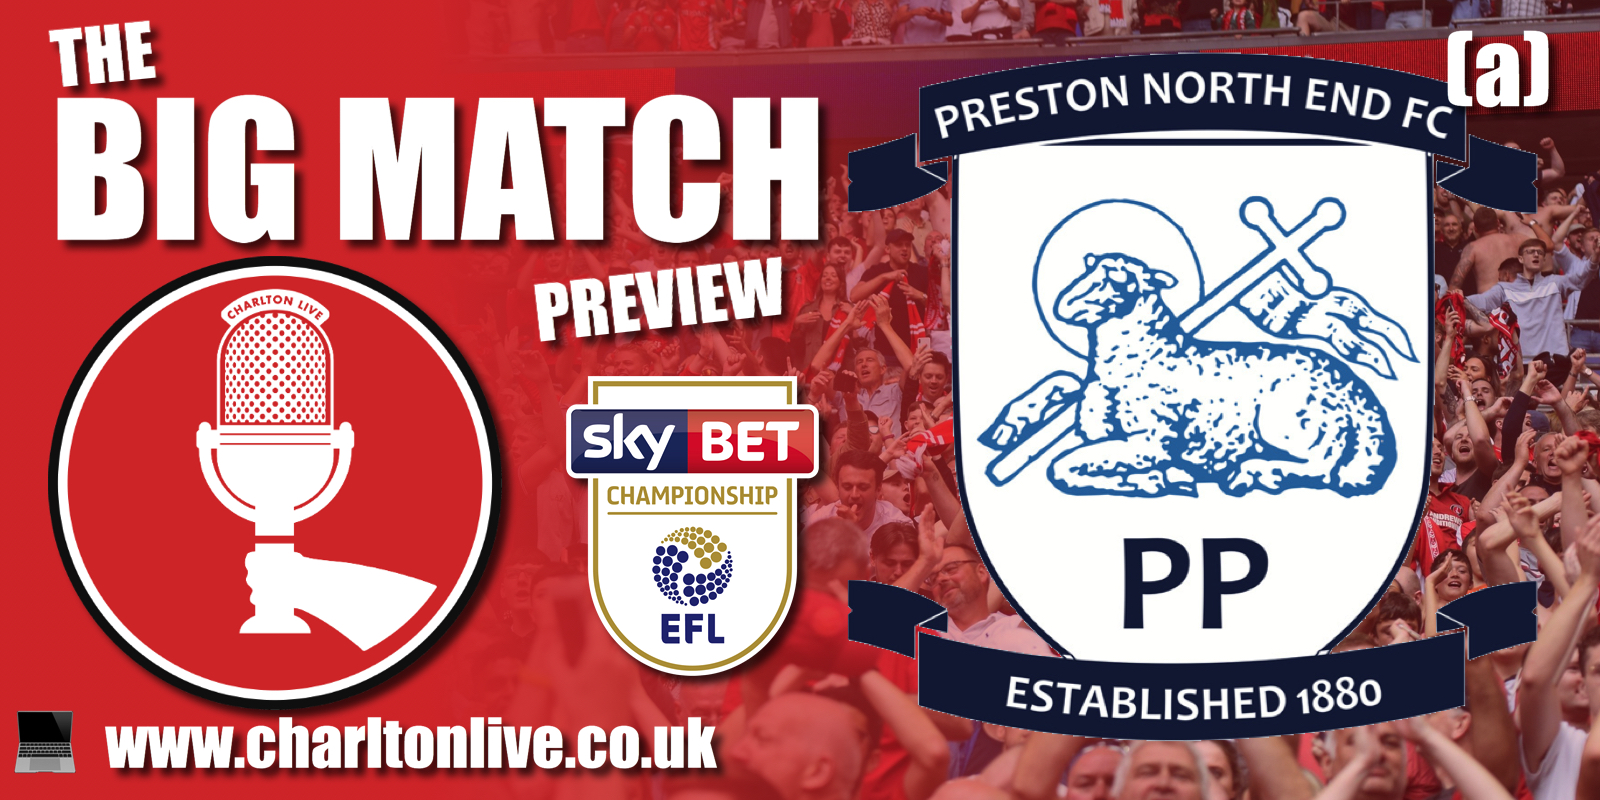 Join Louis Mendez, Tom Wallin and Nathan Muller as theygear up for Saturday's trip to Deepdale to take on Preston North End. They hear from […]